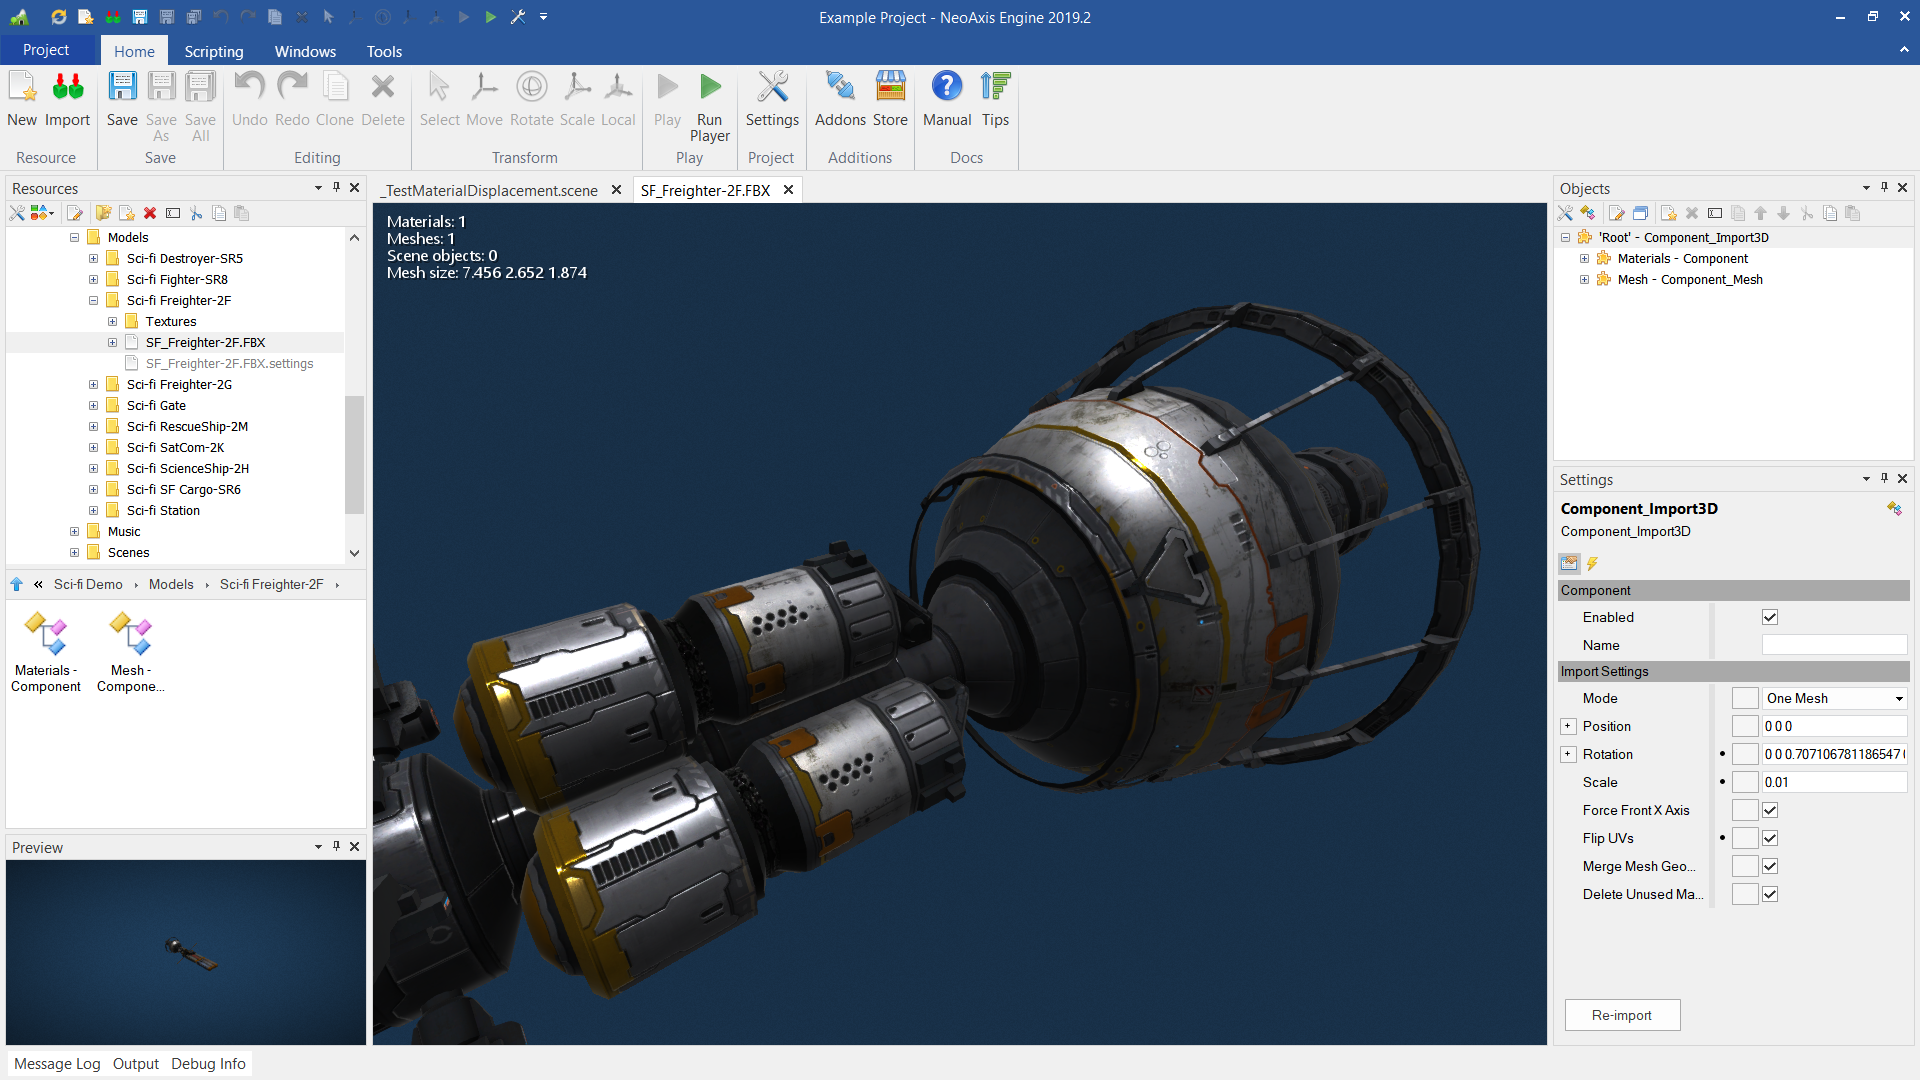 NeoAxis Engine 2019 2 3 Released | NeoAxis Engine